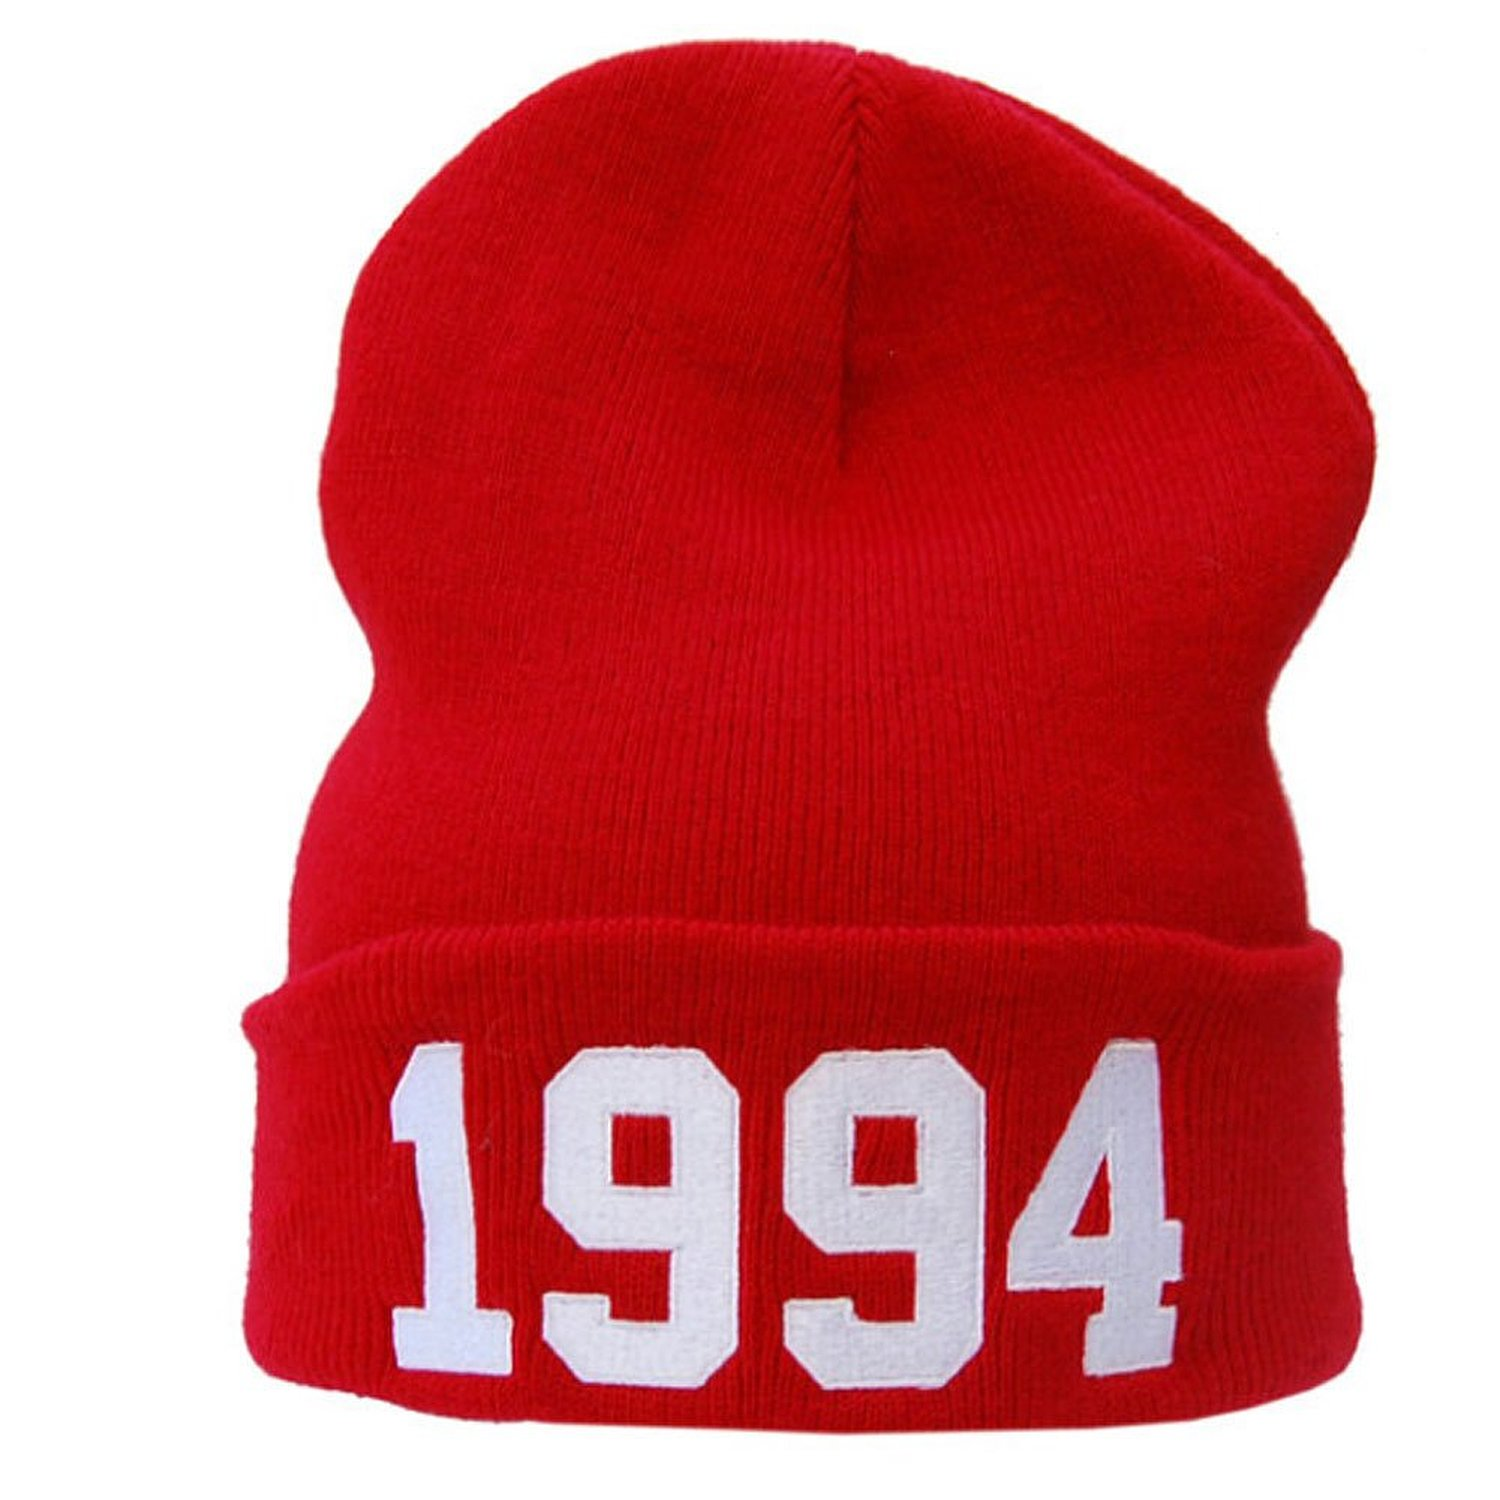 Amazon.com: Justin Bieber 1994 Knit Red Beanie Hat Letter Number Beanie: Clothing